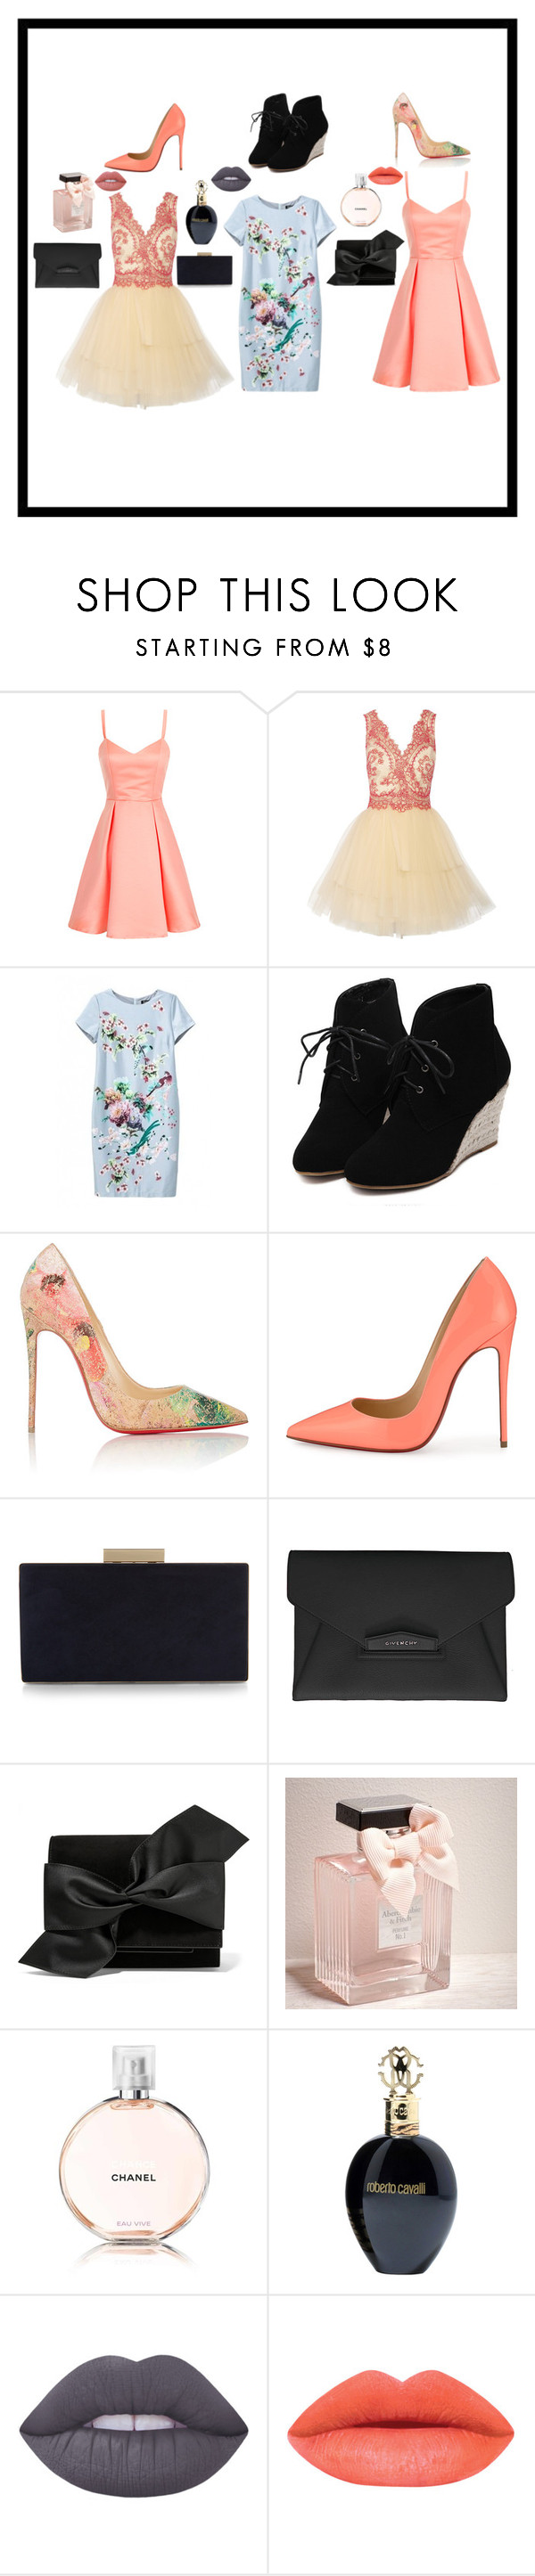 """""""Untitled #42"""" by dakotawillard ❤ liked on Polyvore featuring Notte by Marchesa, WithChic, Christian Louboutin, Monsoon, Givenchy, Victoria Beckham, Abercrombie & Fitch, Chanel, Roberto Cavalli and Lime Crime"""